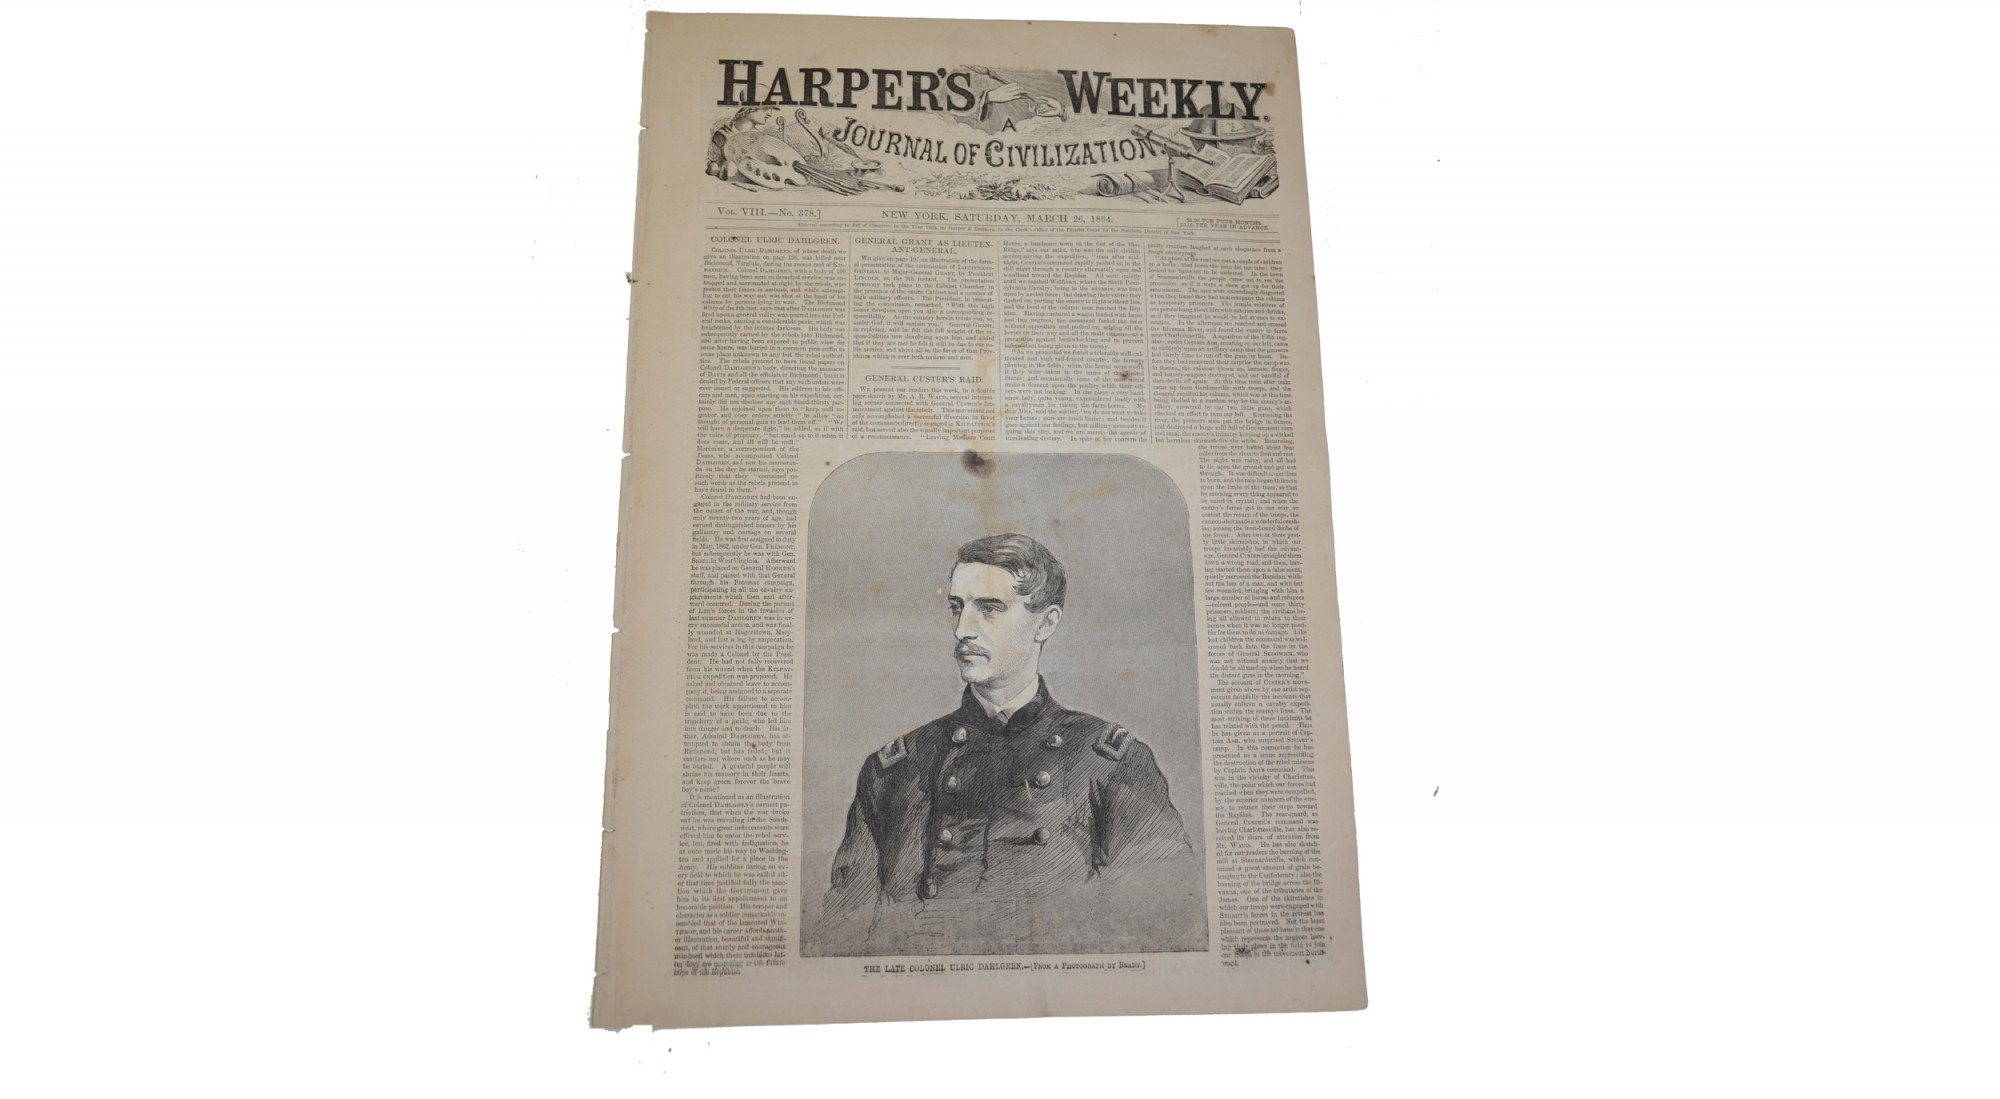 HARPER'S WEEKLY, DATED MARCH 26, 1864 – DAHLGREN RAID/CUSTER'S RAID